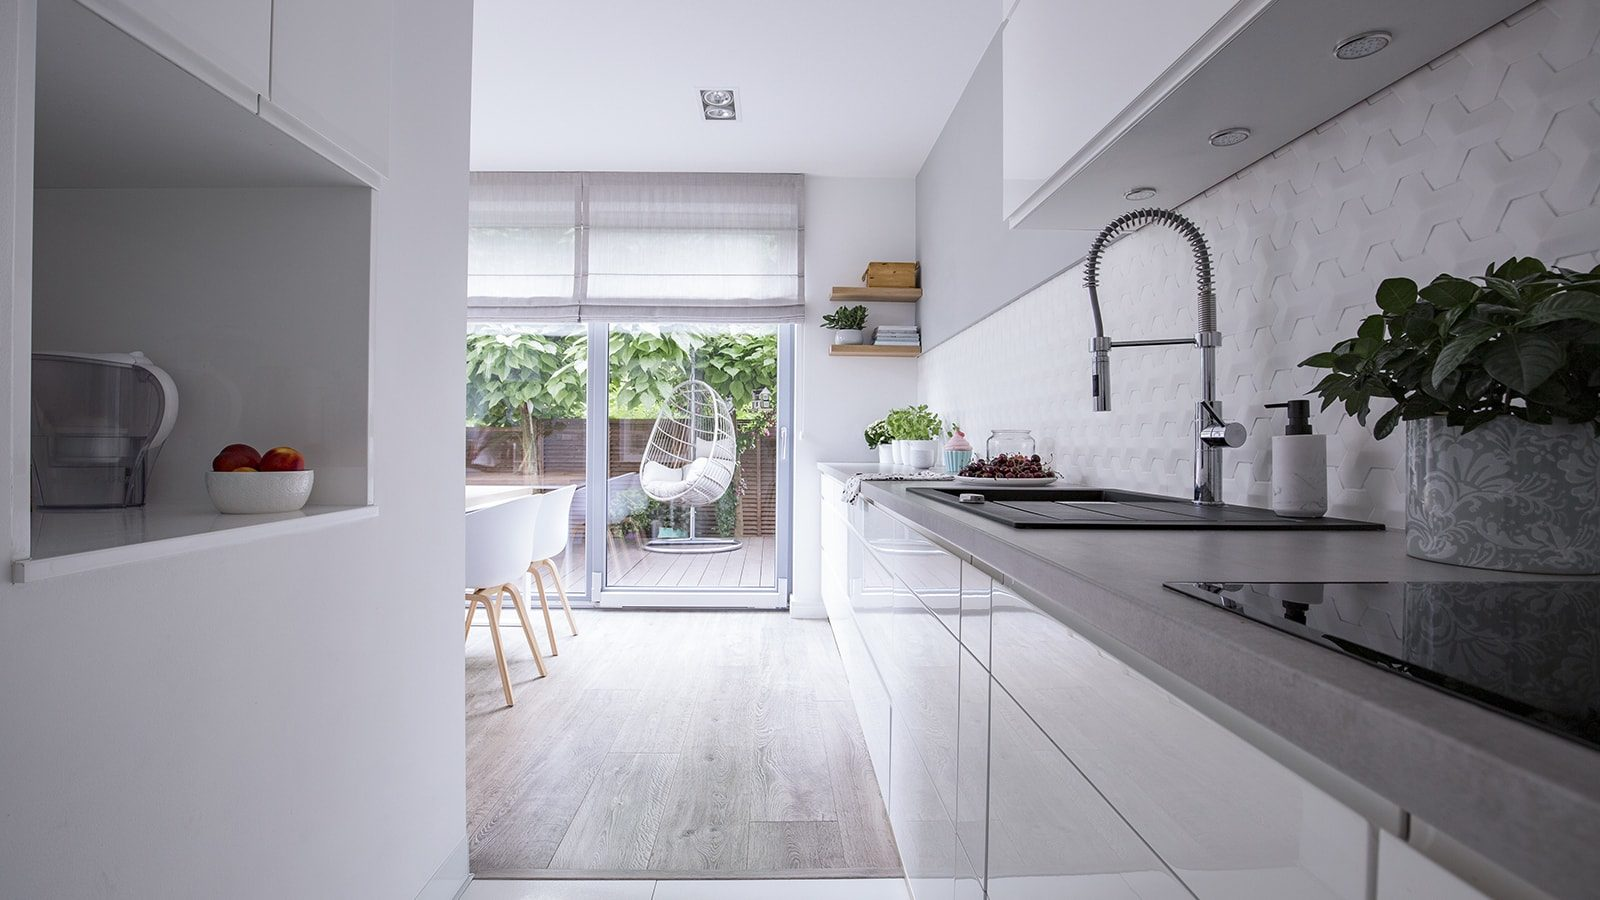 White cabinets in a modern kitchen